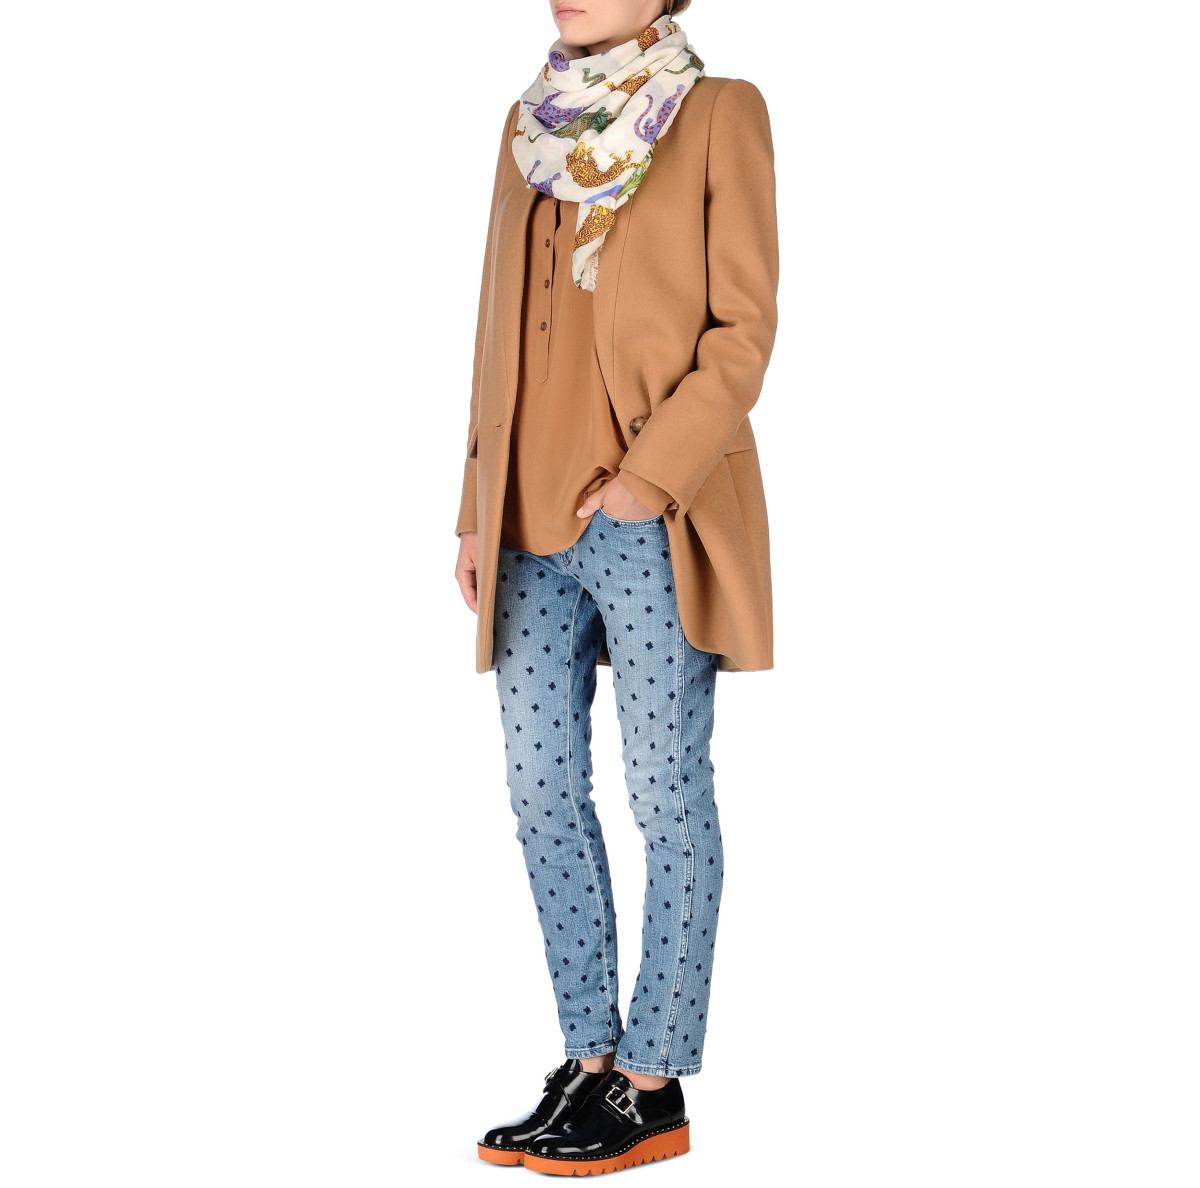 "Will Sweeney / Product & Licensing / Stella McCartney Scarf<span class=""slide_numbers""><span class=""slide_number"">3</span>/3</span>"